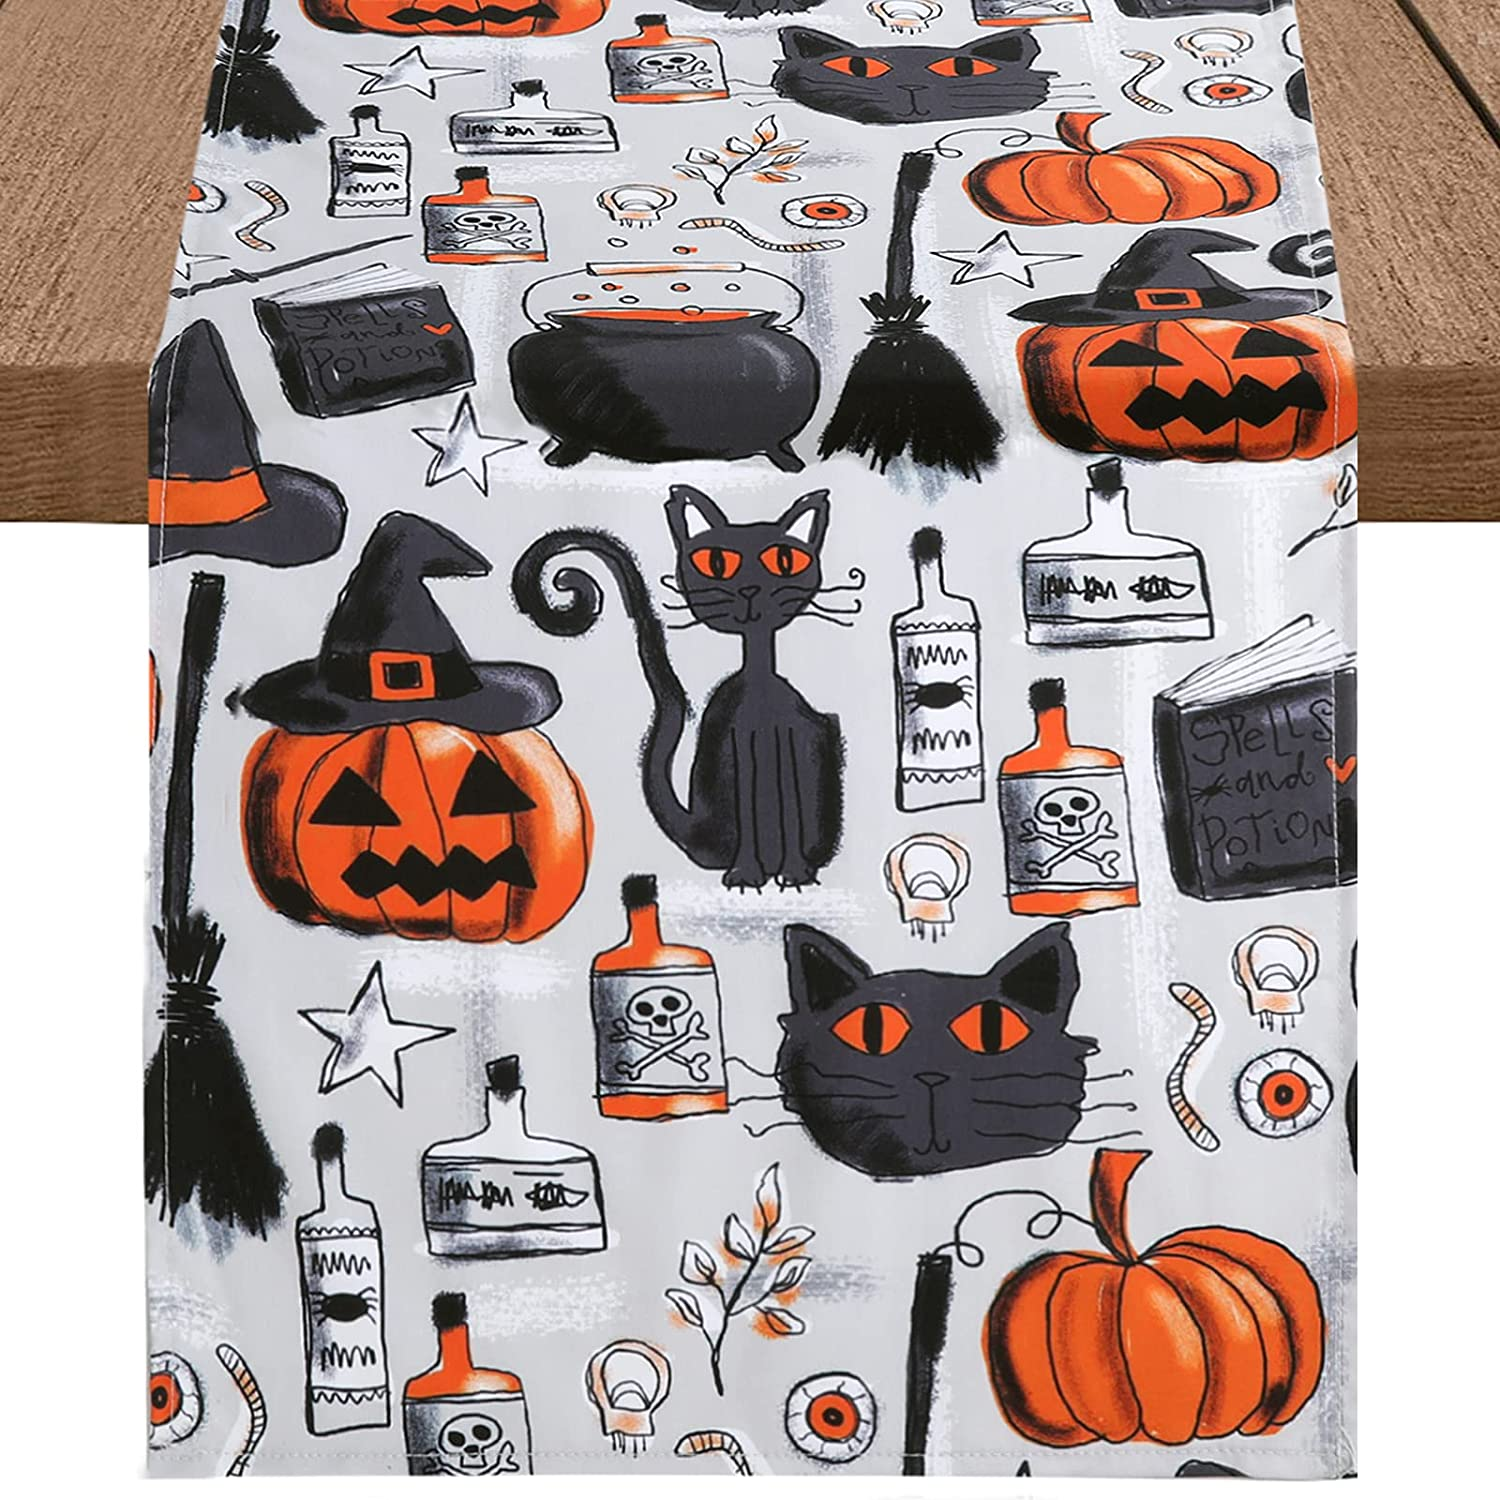 B-COOL Halloween Table Runners 70% OFF Outlet 13 by Branded goods Resistant Inch Tab 84 Stain